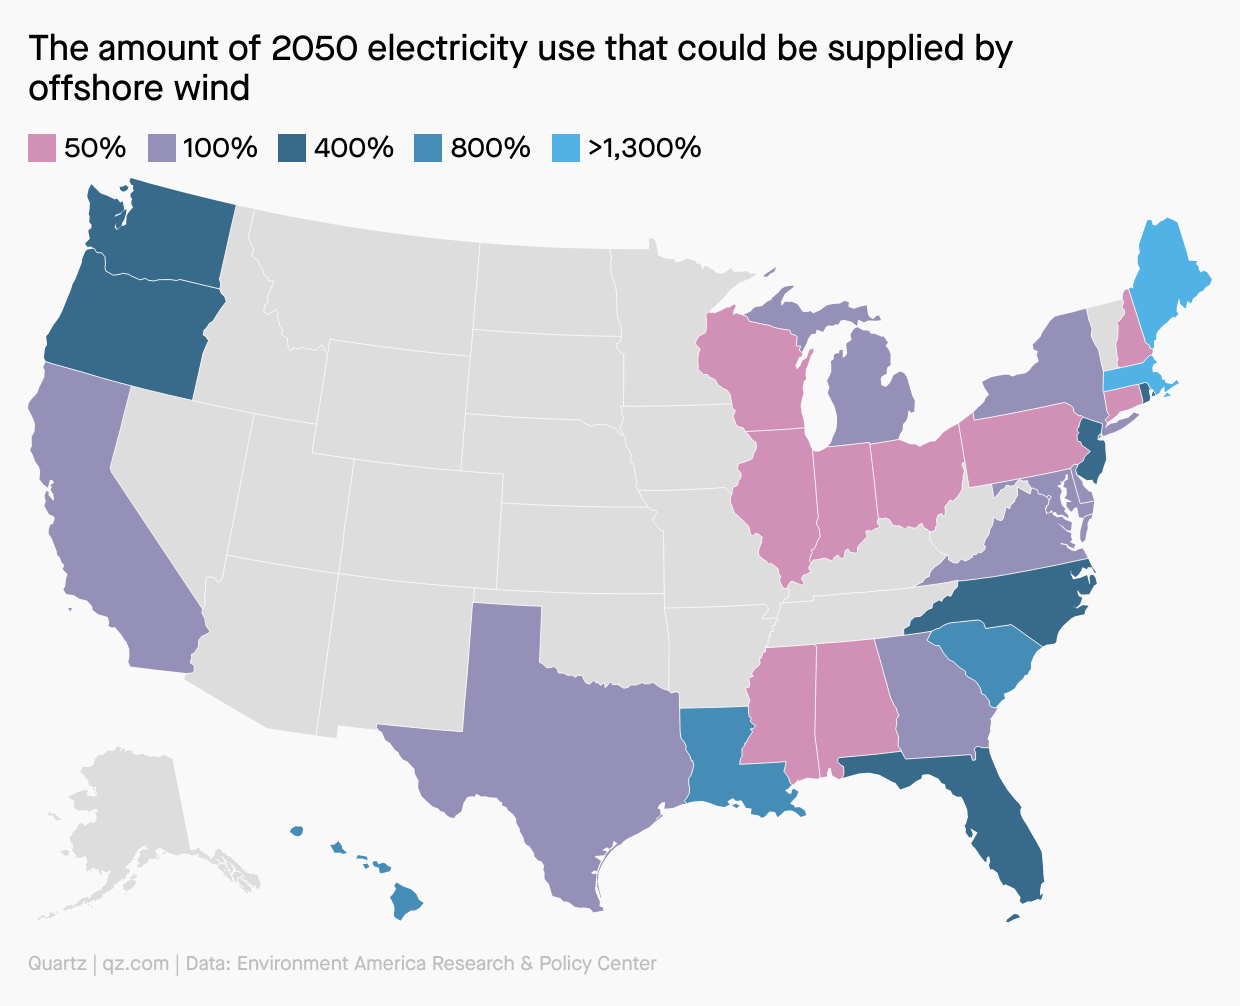 A map of the amount of 2050 electricity use that could be supplied by offshore wind, with more than 1,300% in Maine and Massachusetts.